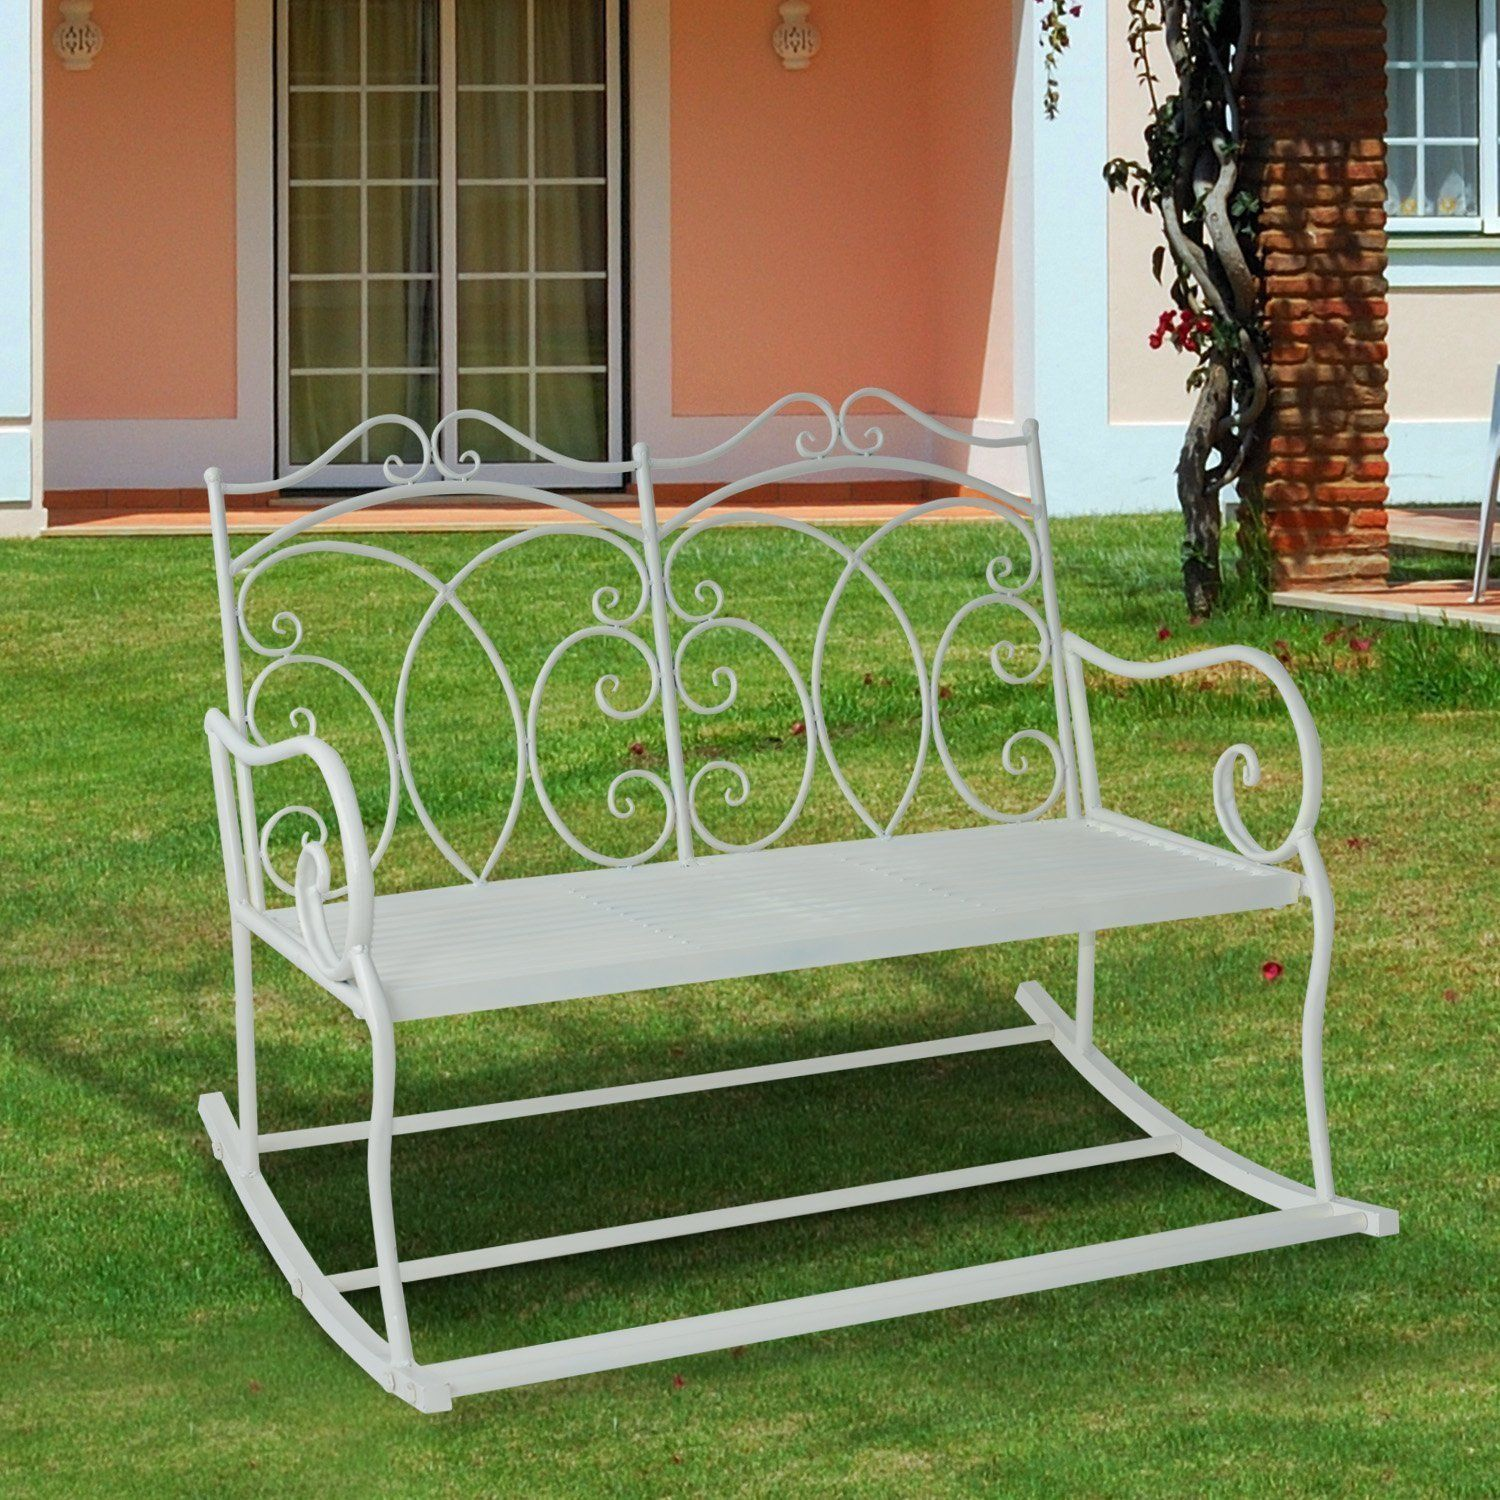 Details About Outsunny 2 Seater Metal Garden Bench Outdoor Rocking Chair  Patio White Love Seat